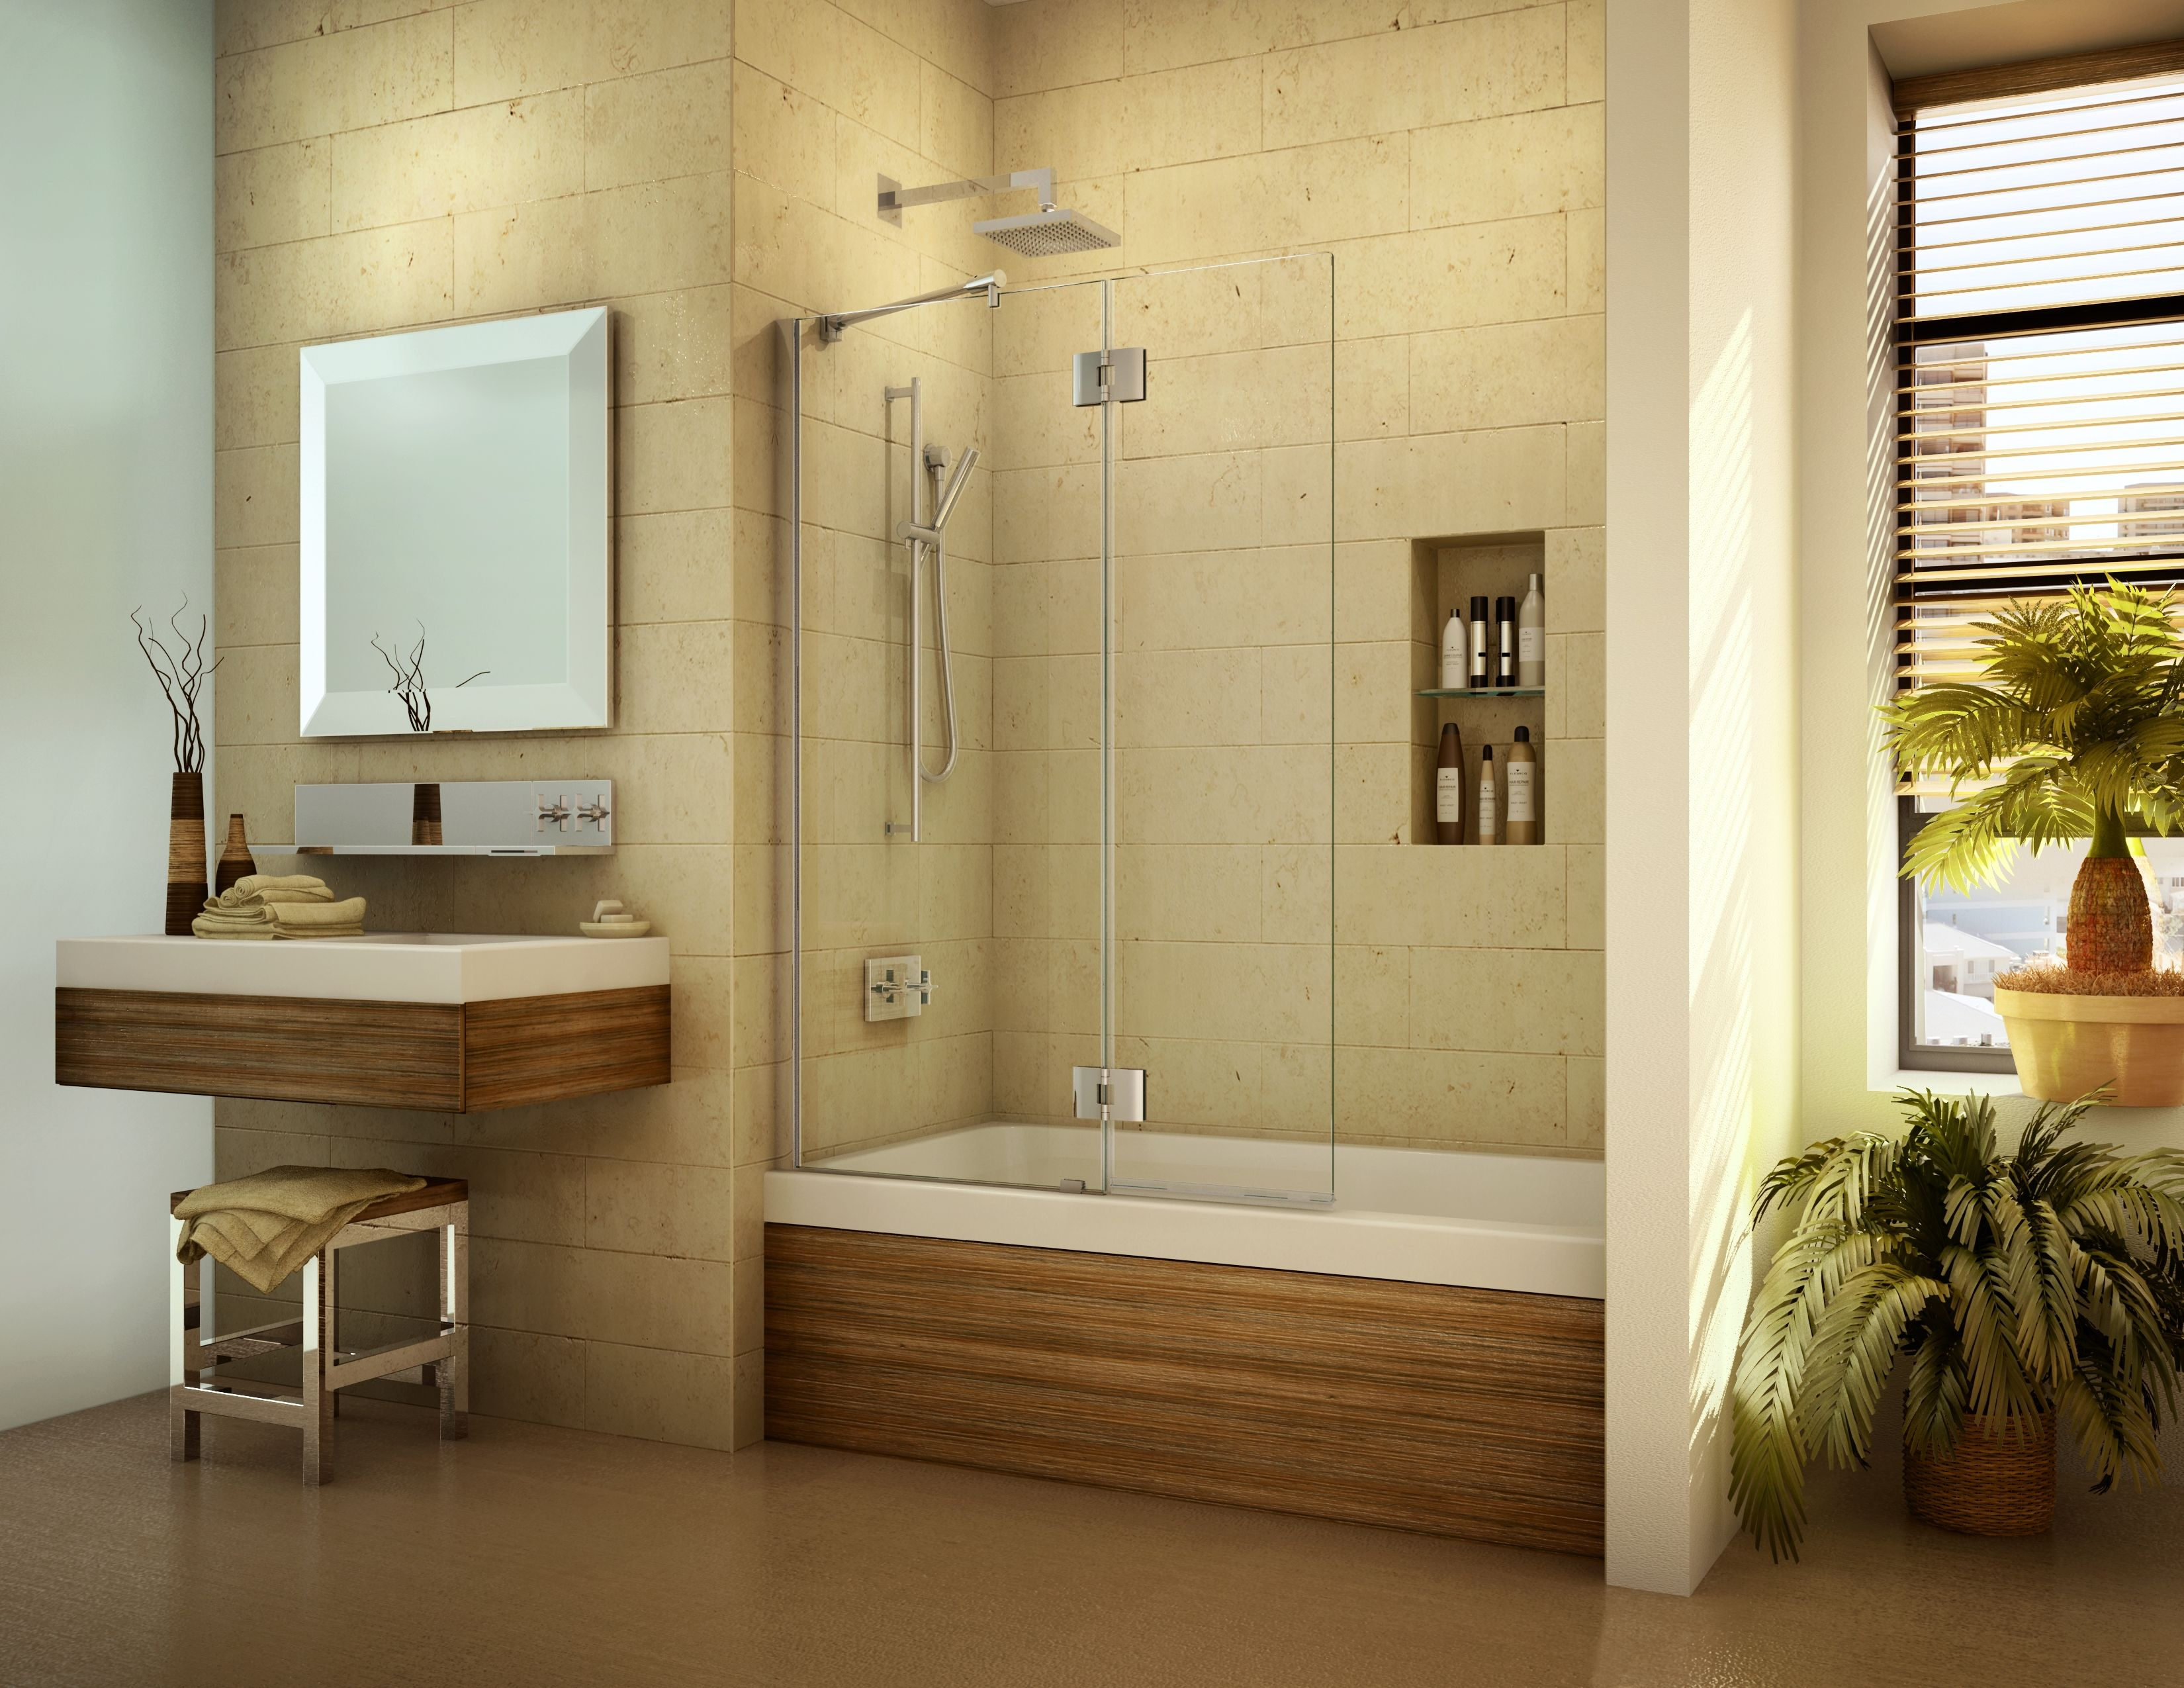 partial shower screen or full curtainhow to compare a bath tub shower - Bathtub Shower Combo Design Ideas